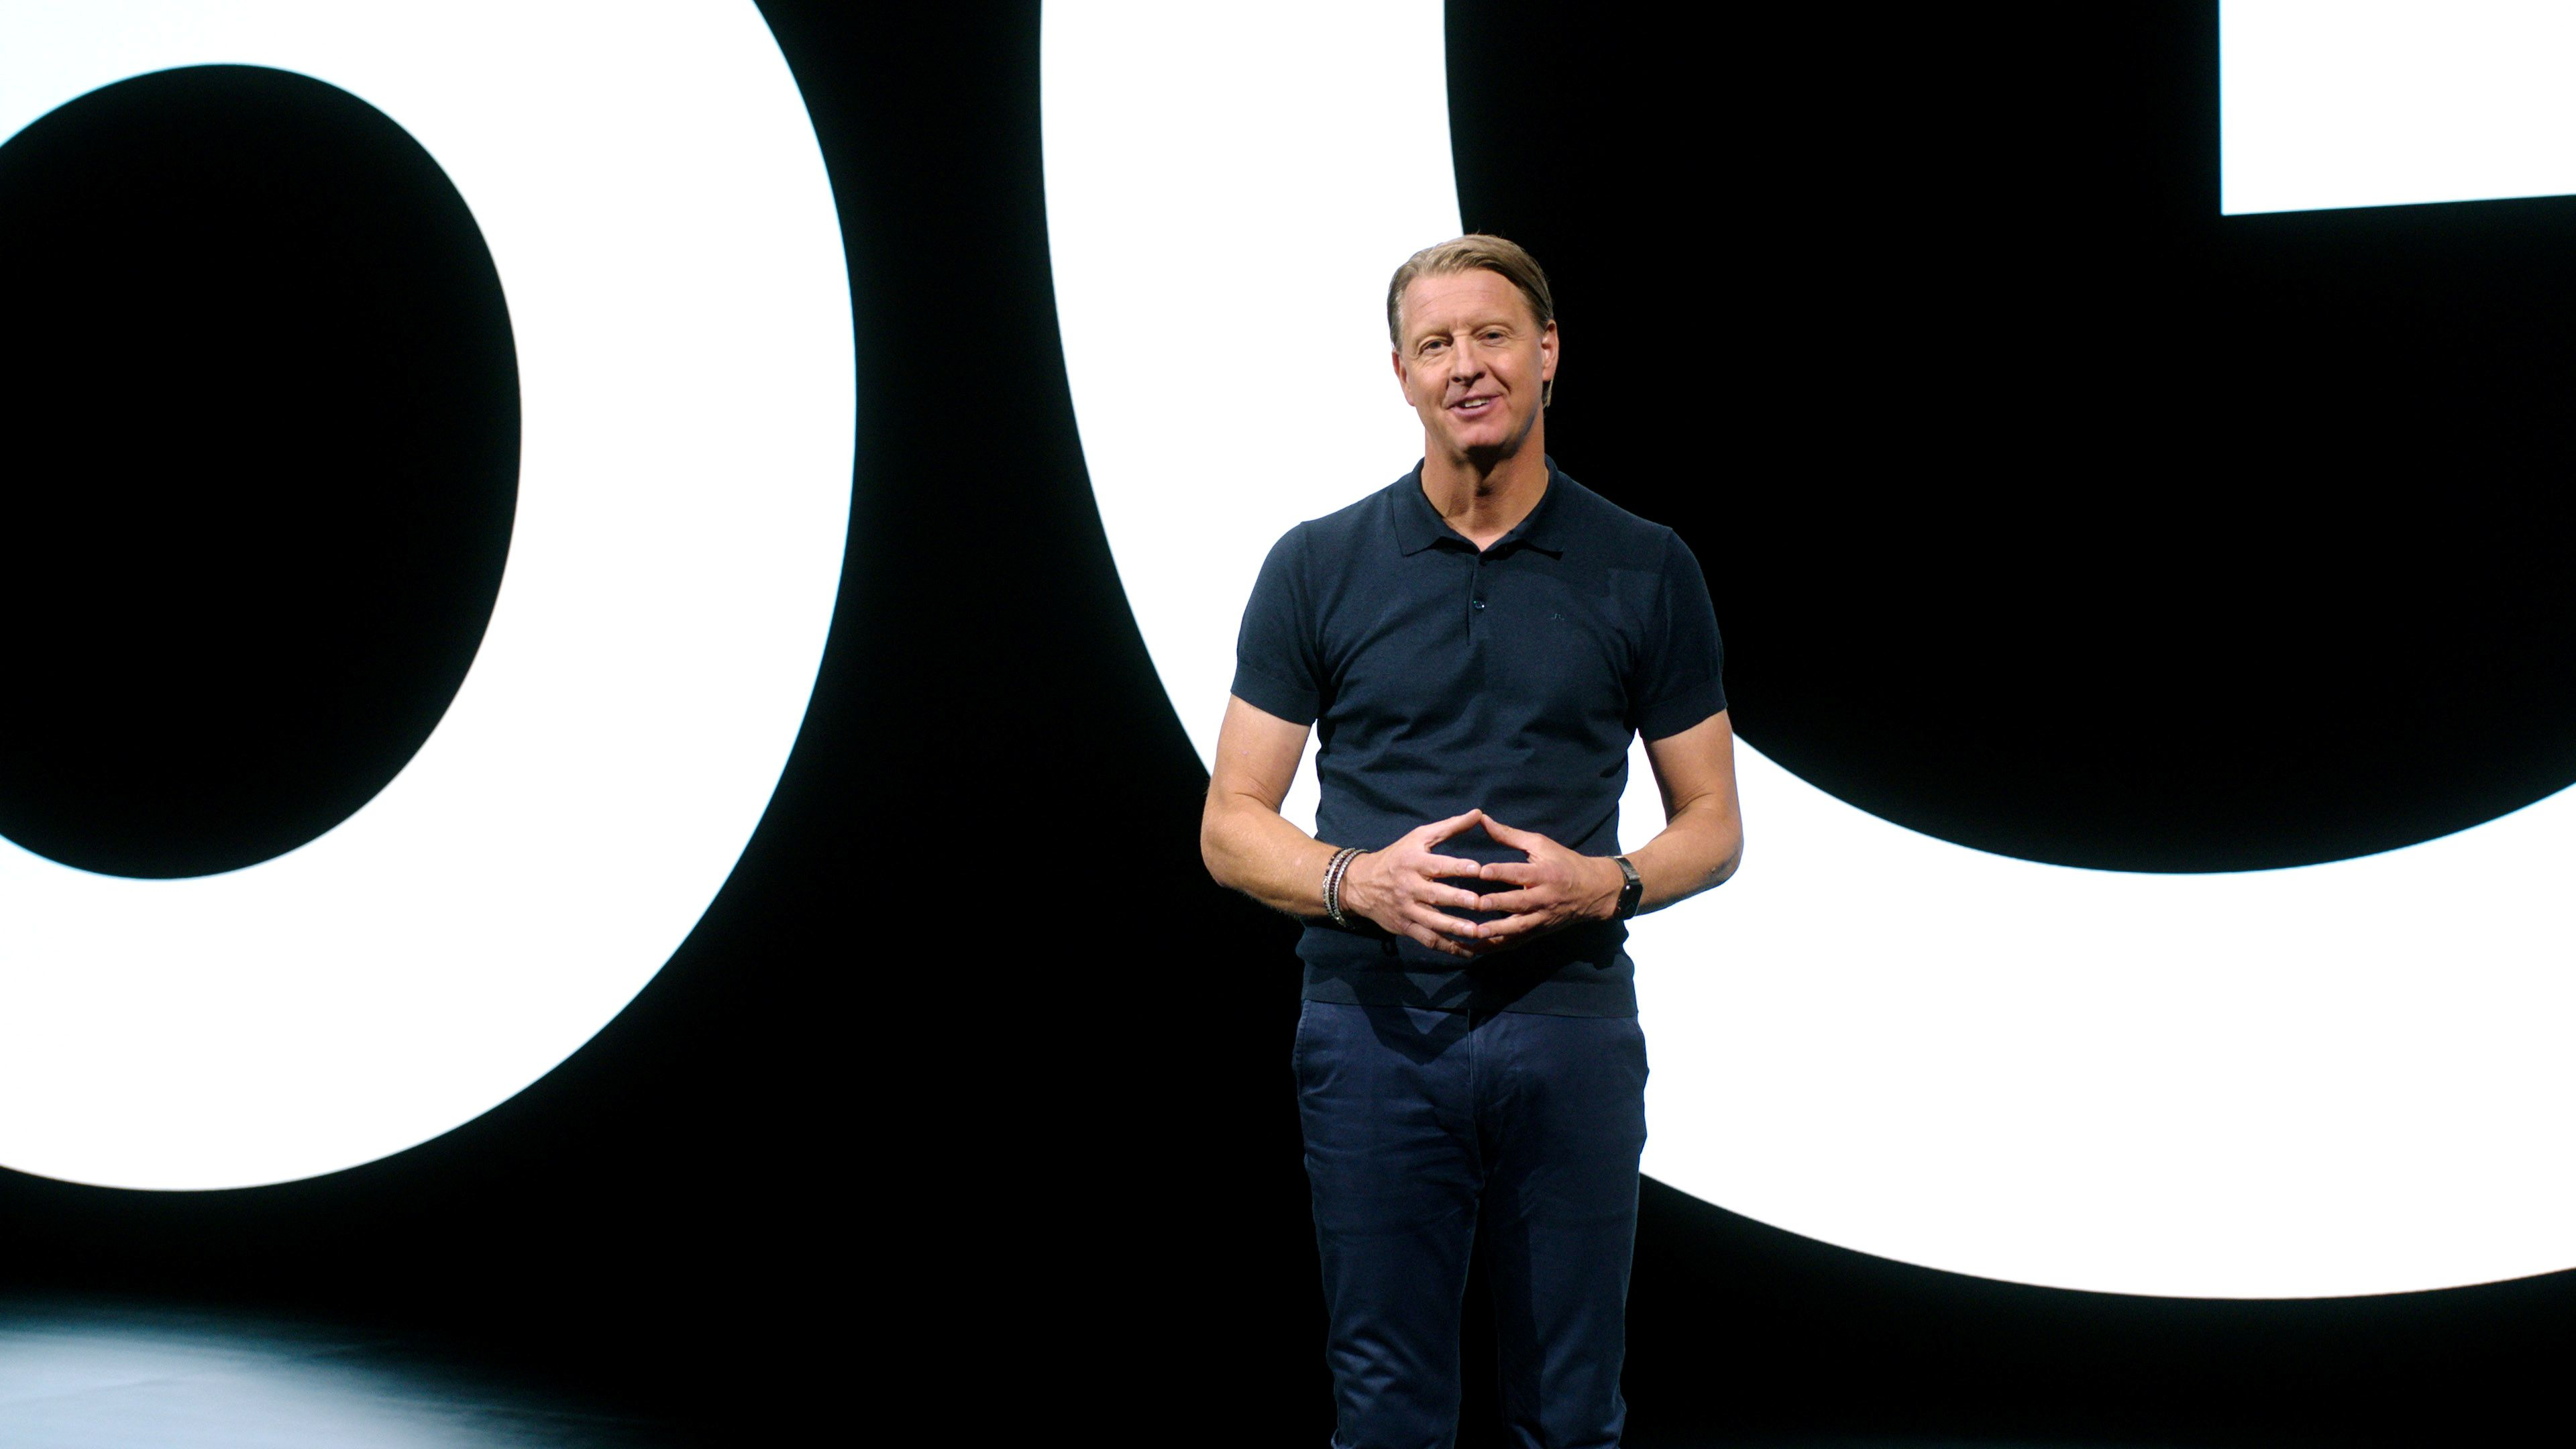 La apertura de CES 2021 estará a cargo del CEO de Verizon, Hans Vestberg (Apple Inc./Handout via REUTERS)